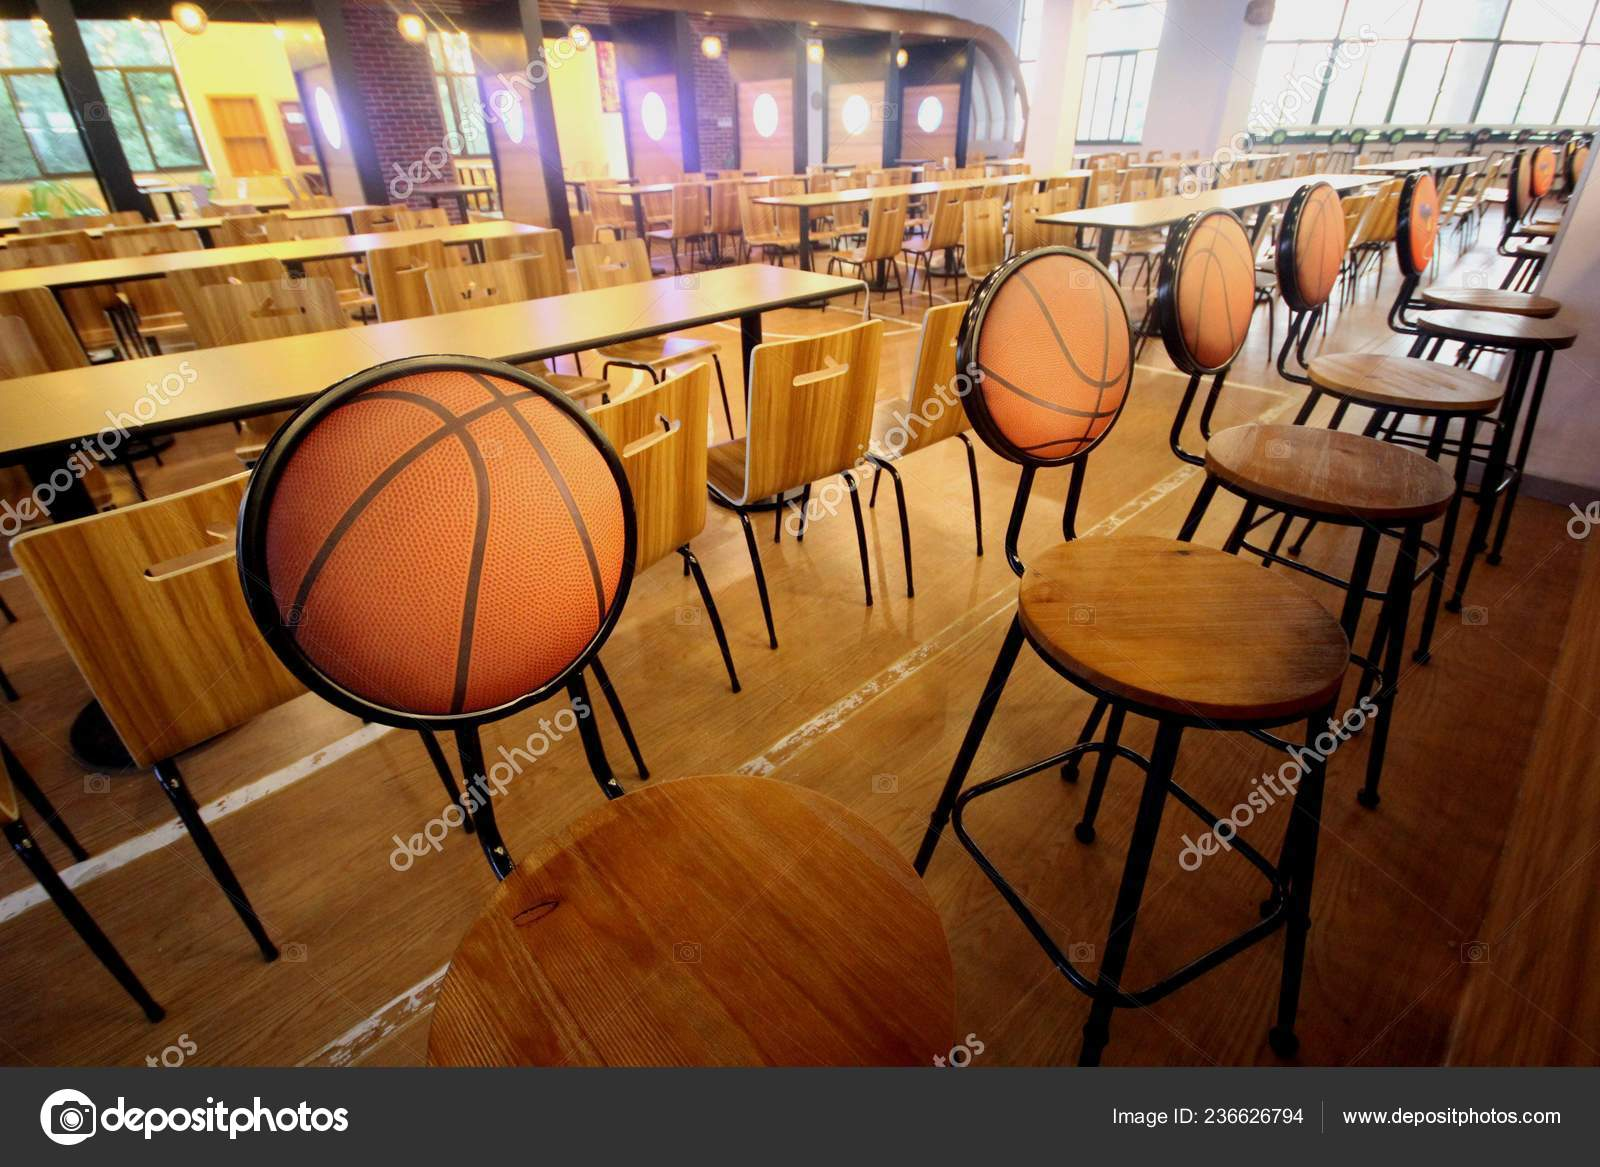 Basketball Chairs View Chairs Featuring Basketball Elements Sports Themed Canteen